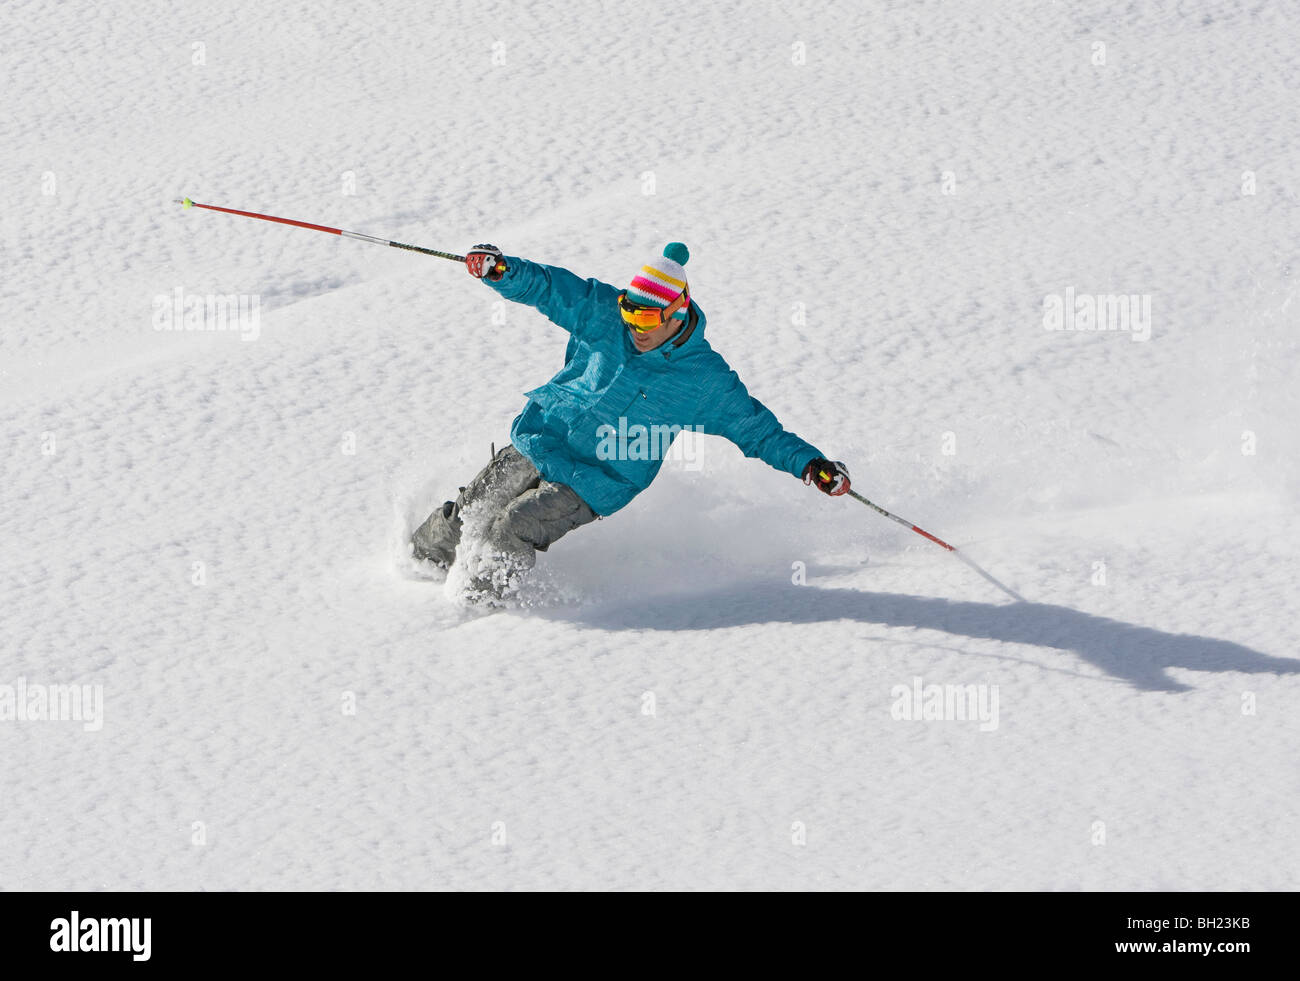 Professional male skier jumps into powder snow, off-piste Val d'Isere - Stock Image